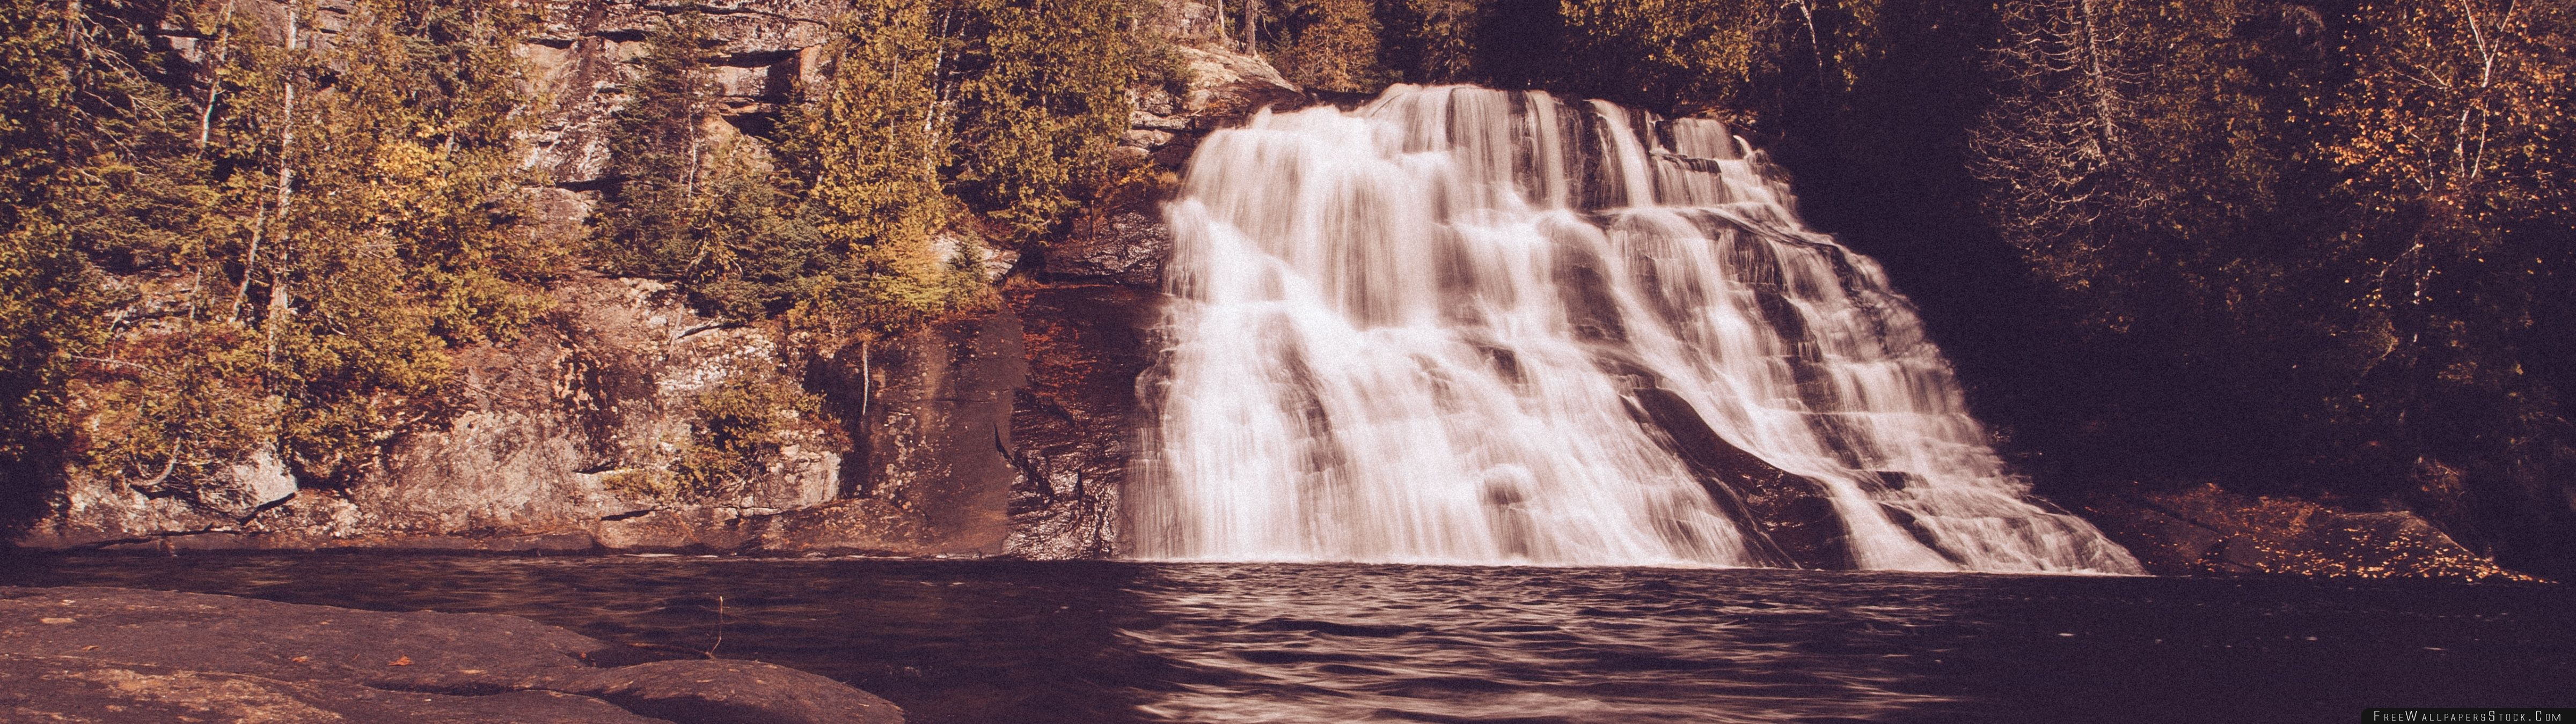 Download Free Wallpaper Vintage Waterfall Forest